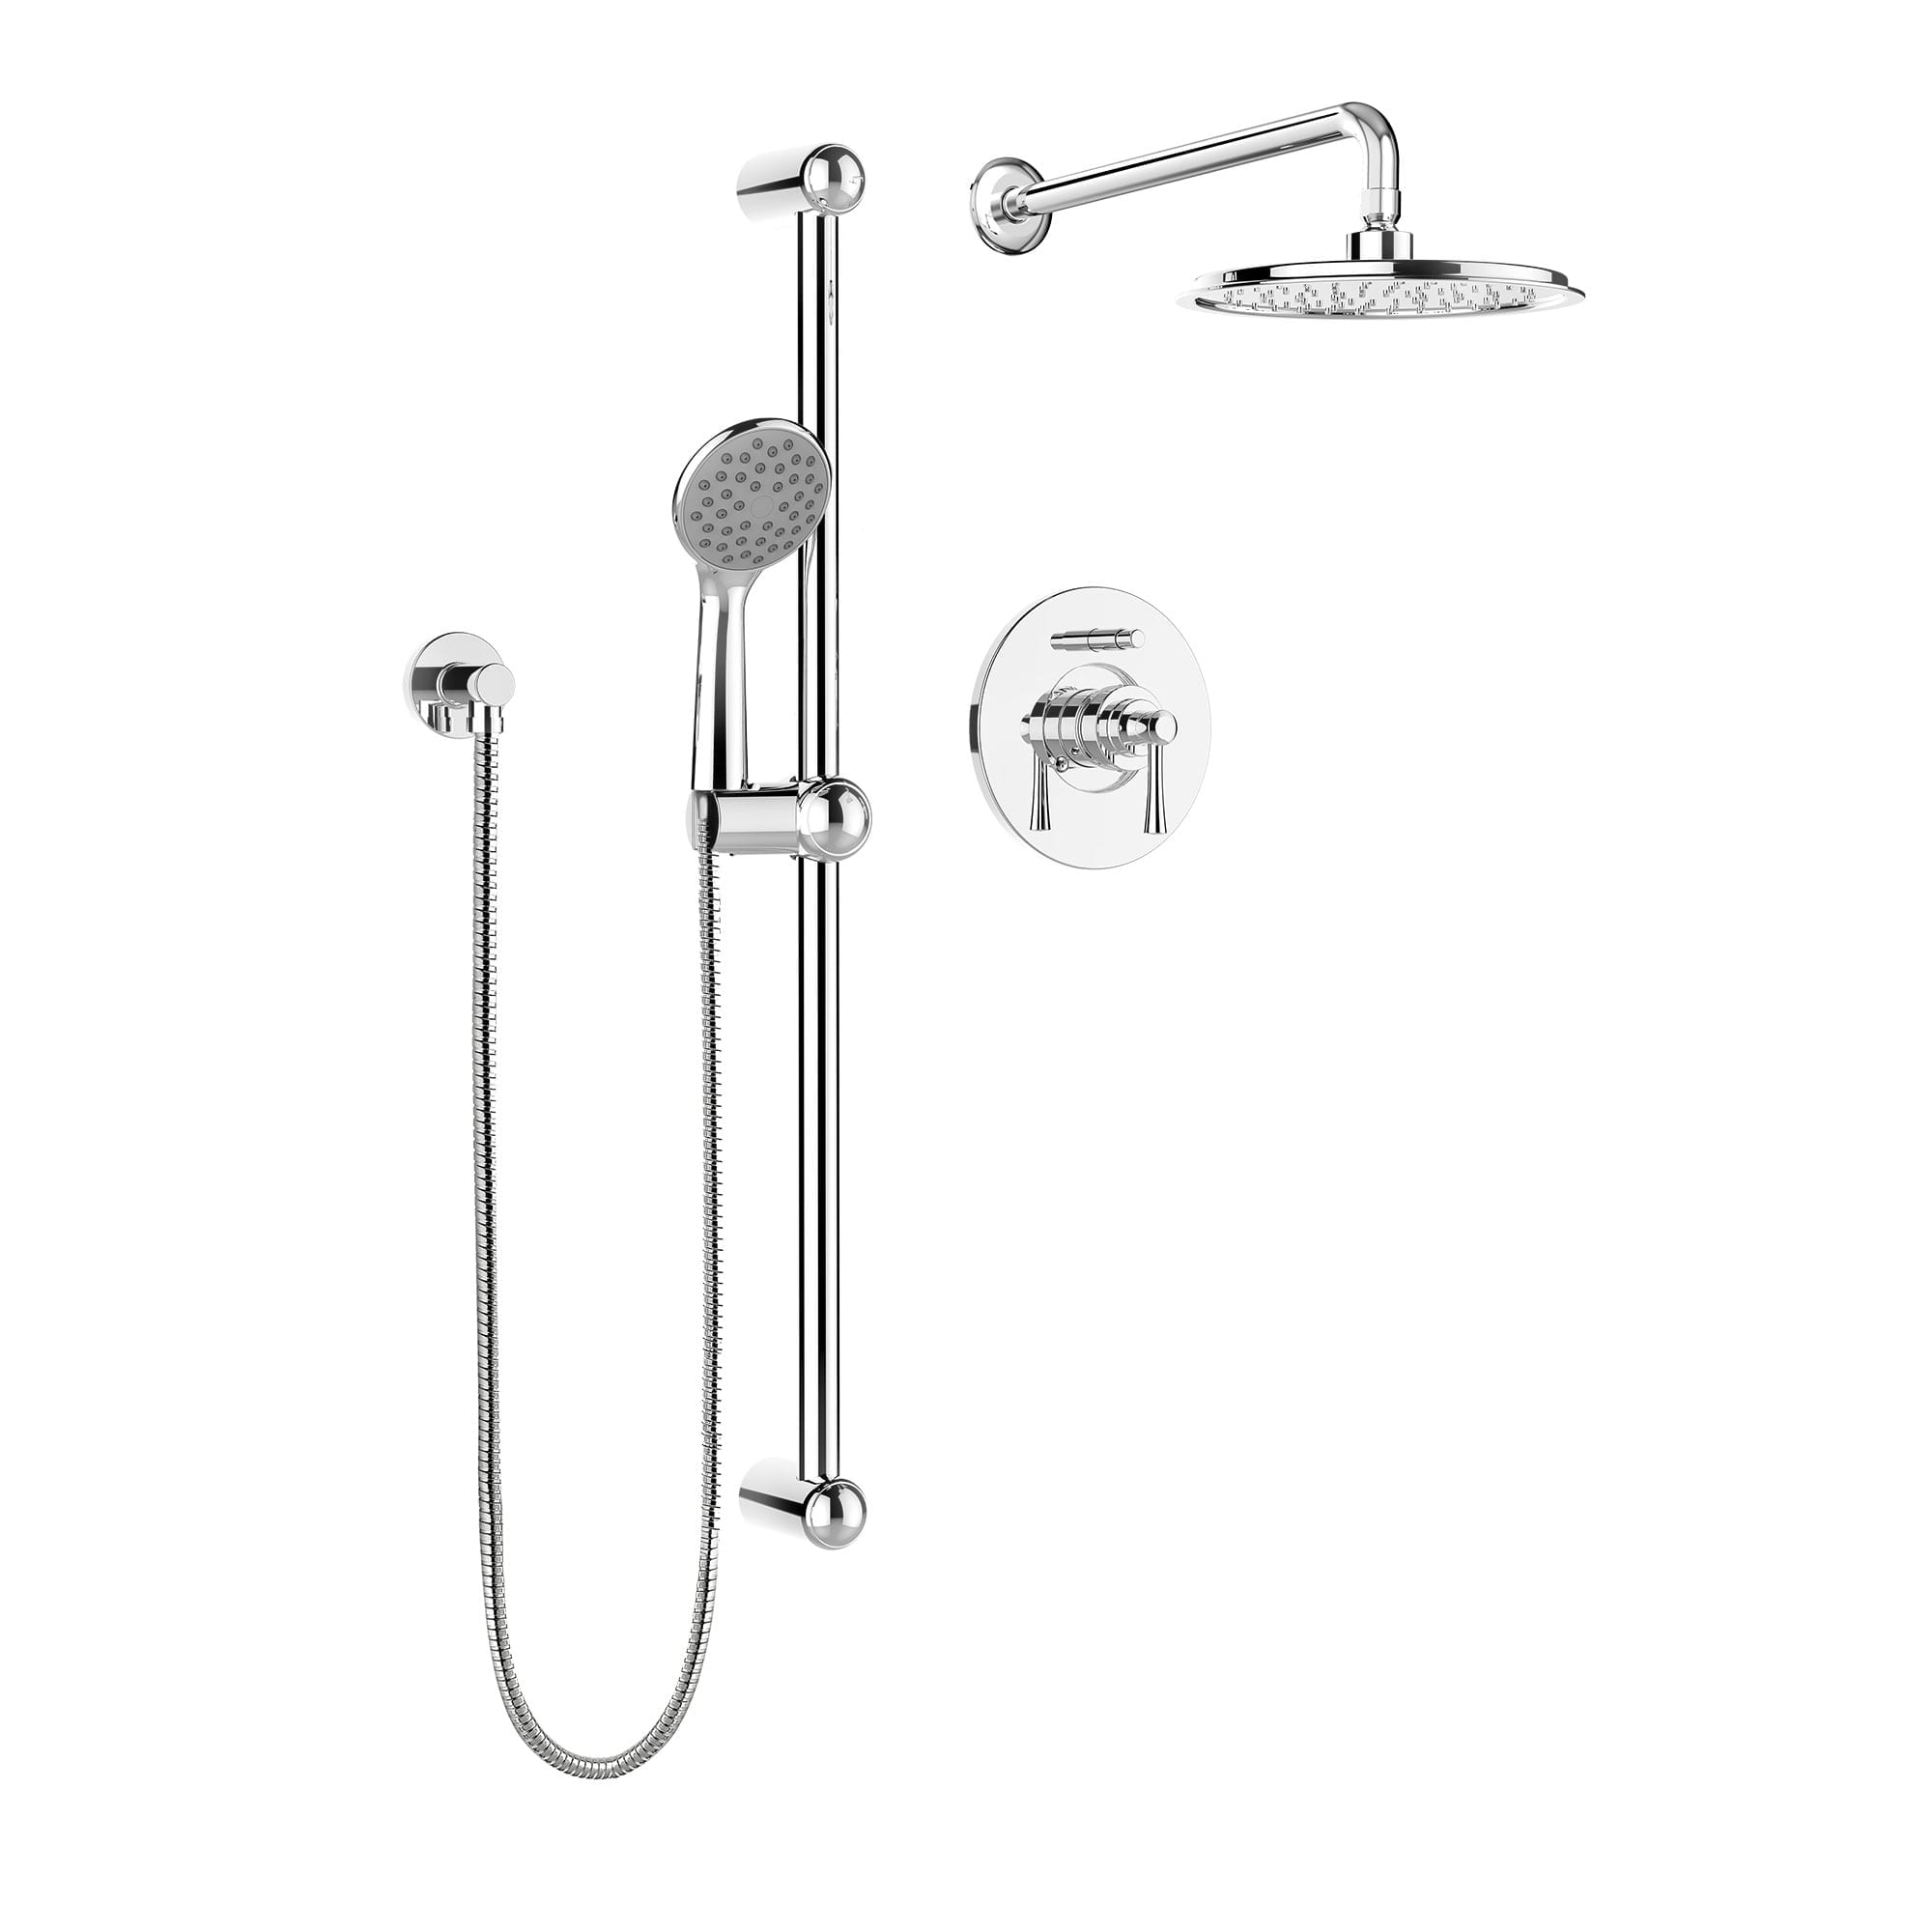 Kit: Shower Faucet   Complete Model With Pressure Balanced Diverter Valve,  Hand Shower Sliding Bar And Shower Head   Bélanger UPT